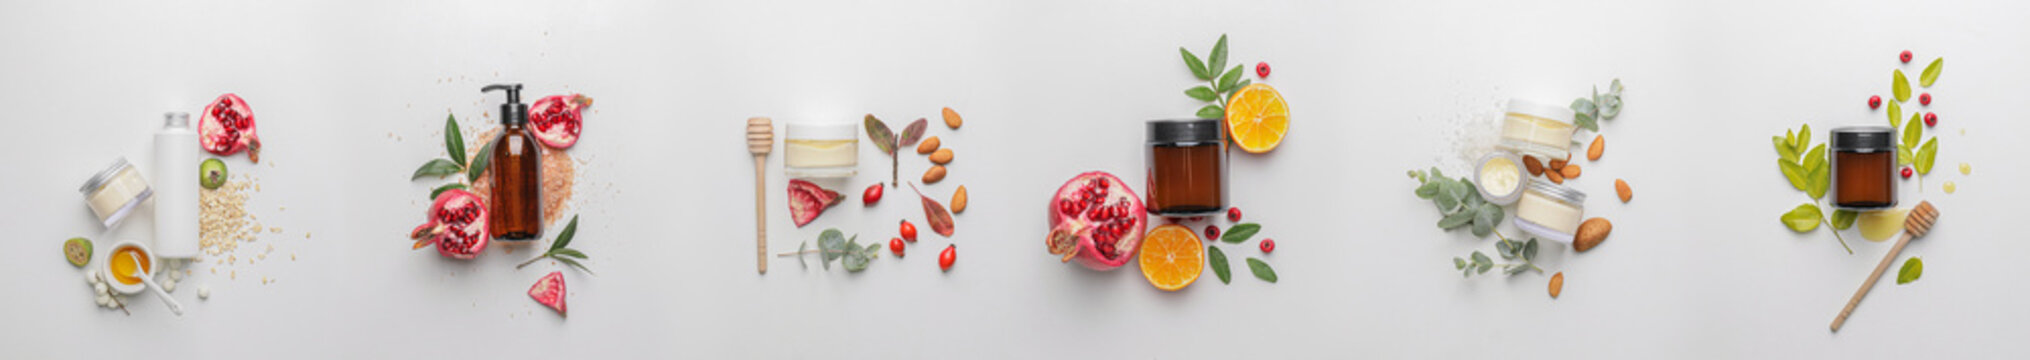 Set of natural cosmetic products on light background